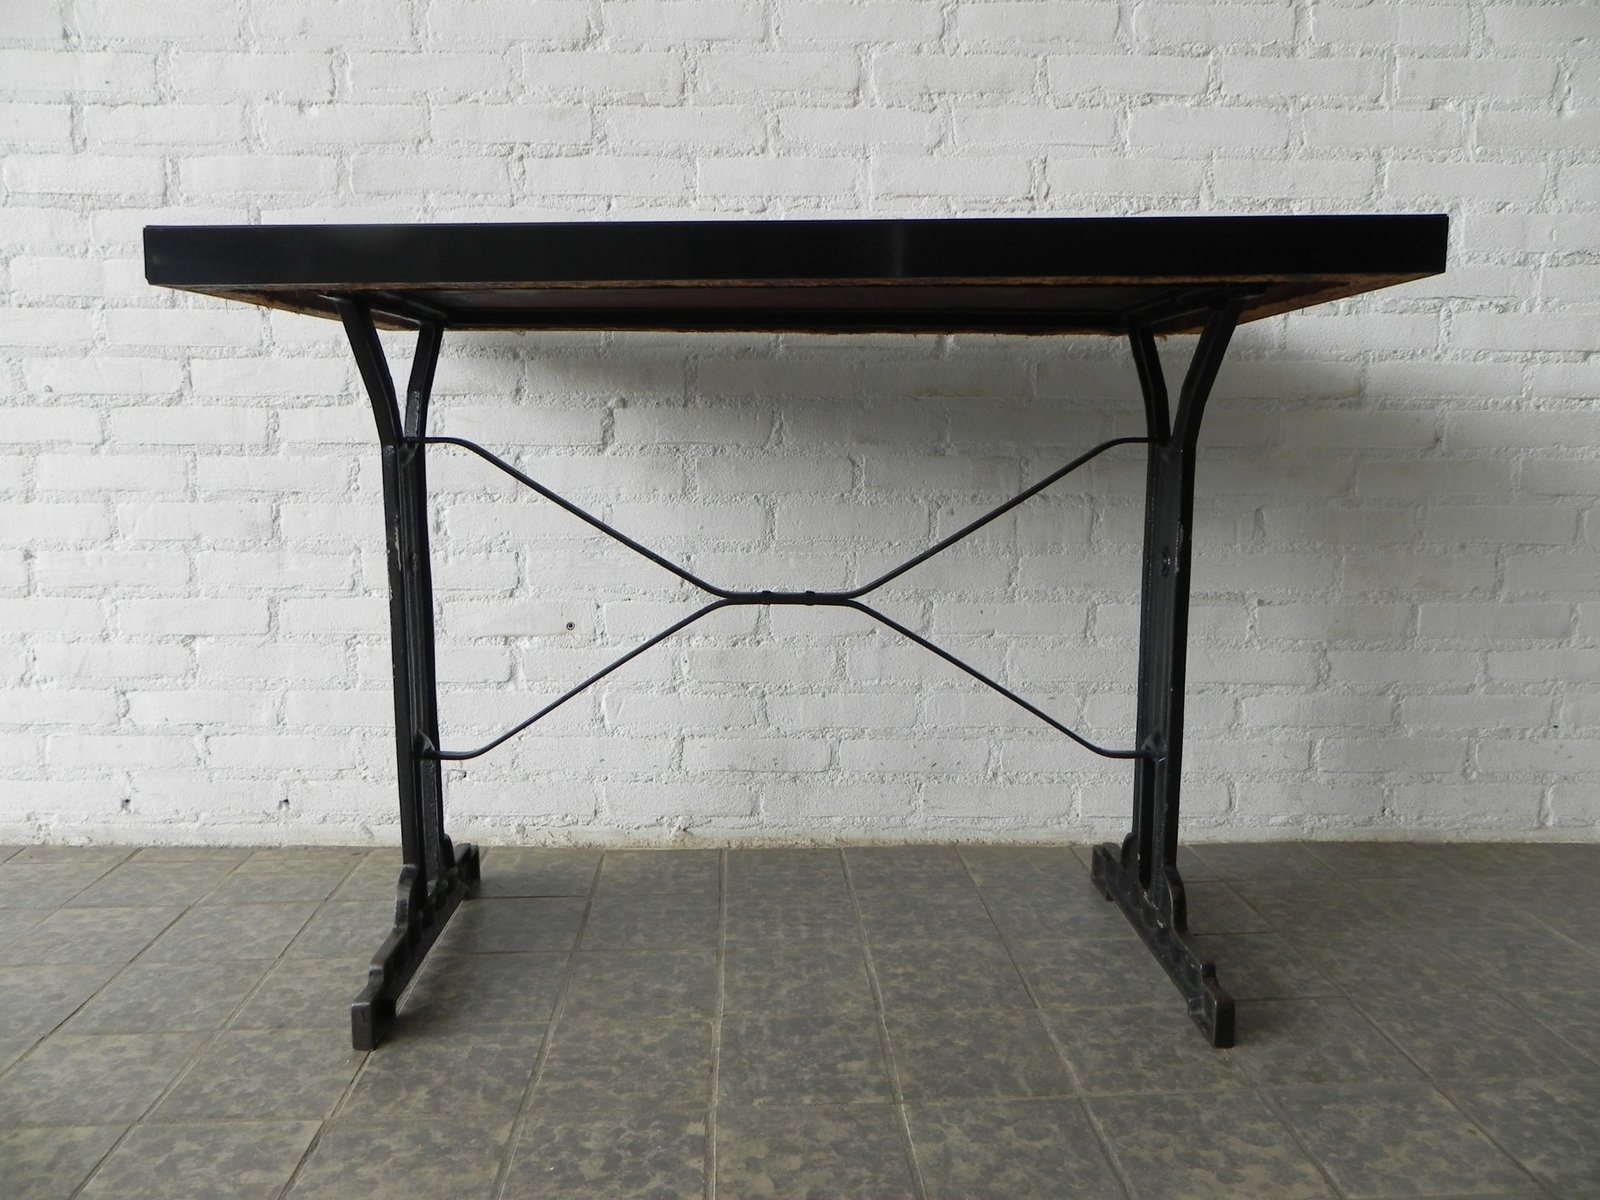 French Bistro Table With Cast Iron Frame And Formica Top, 1930s